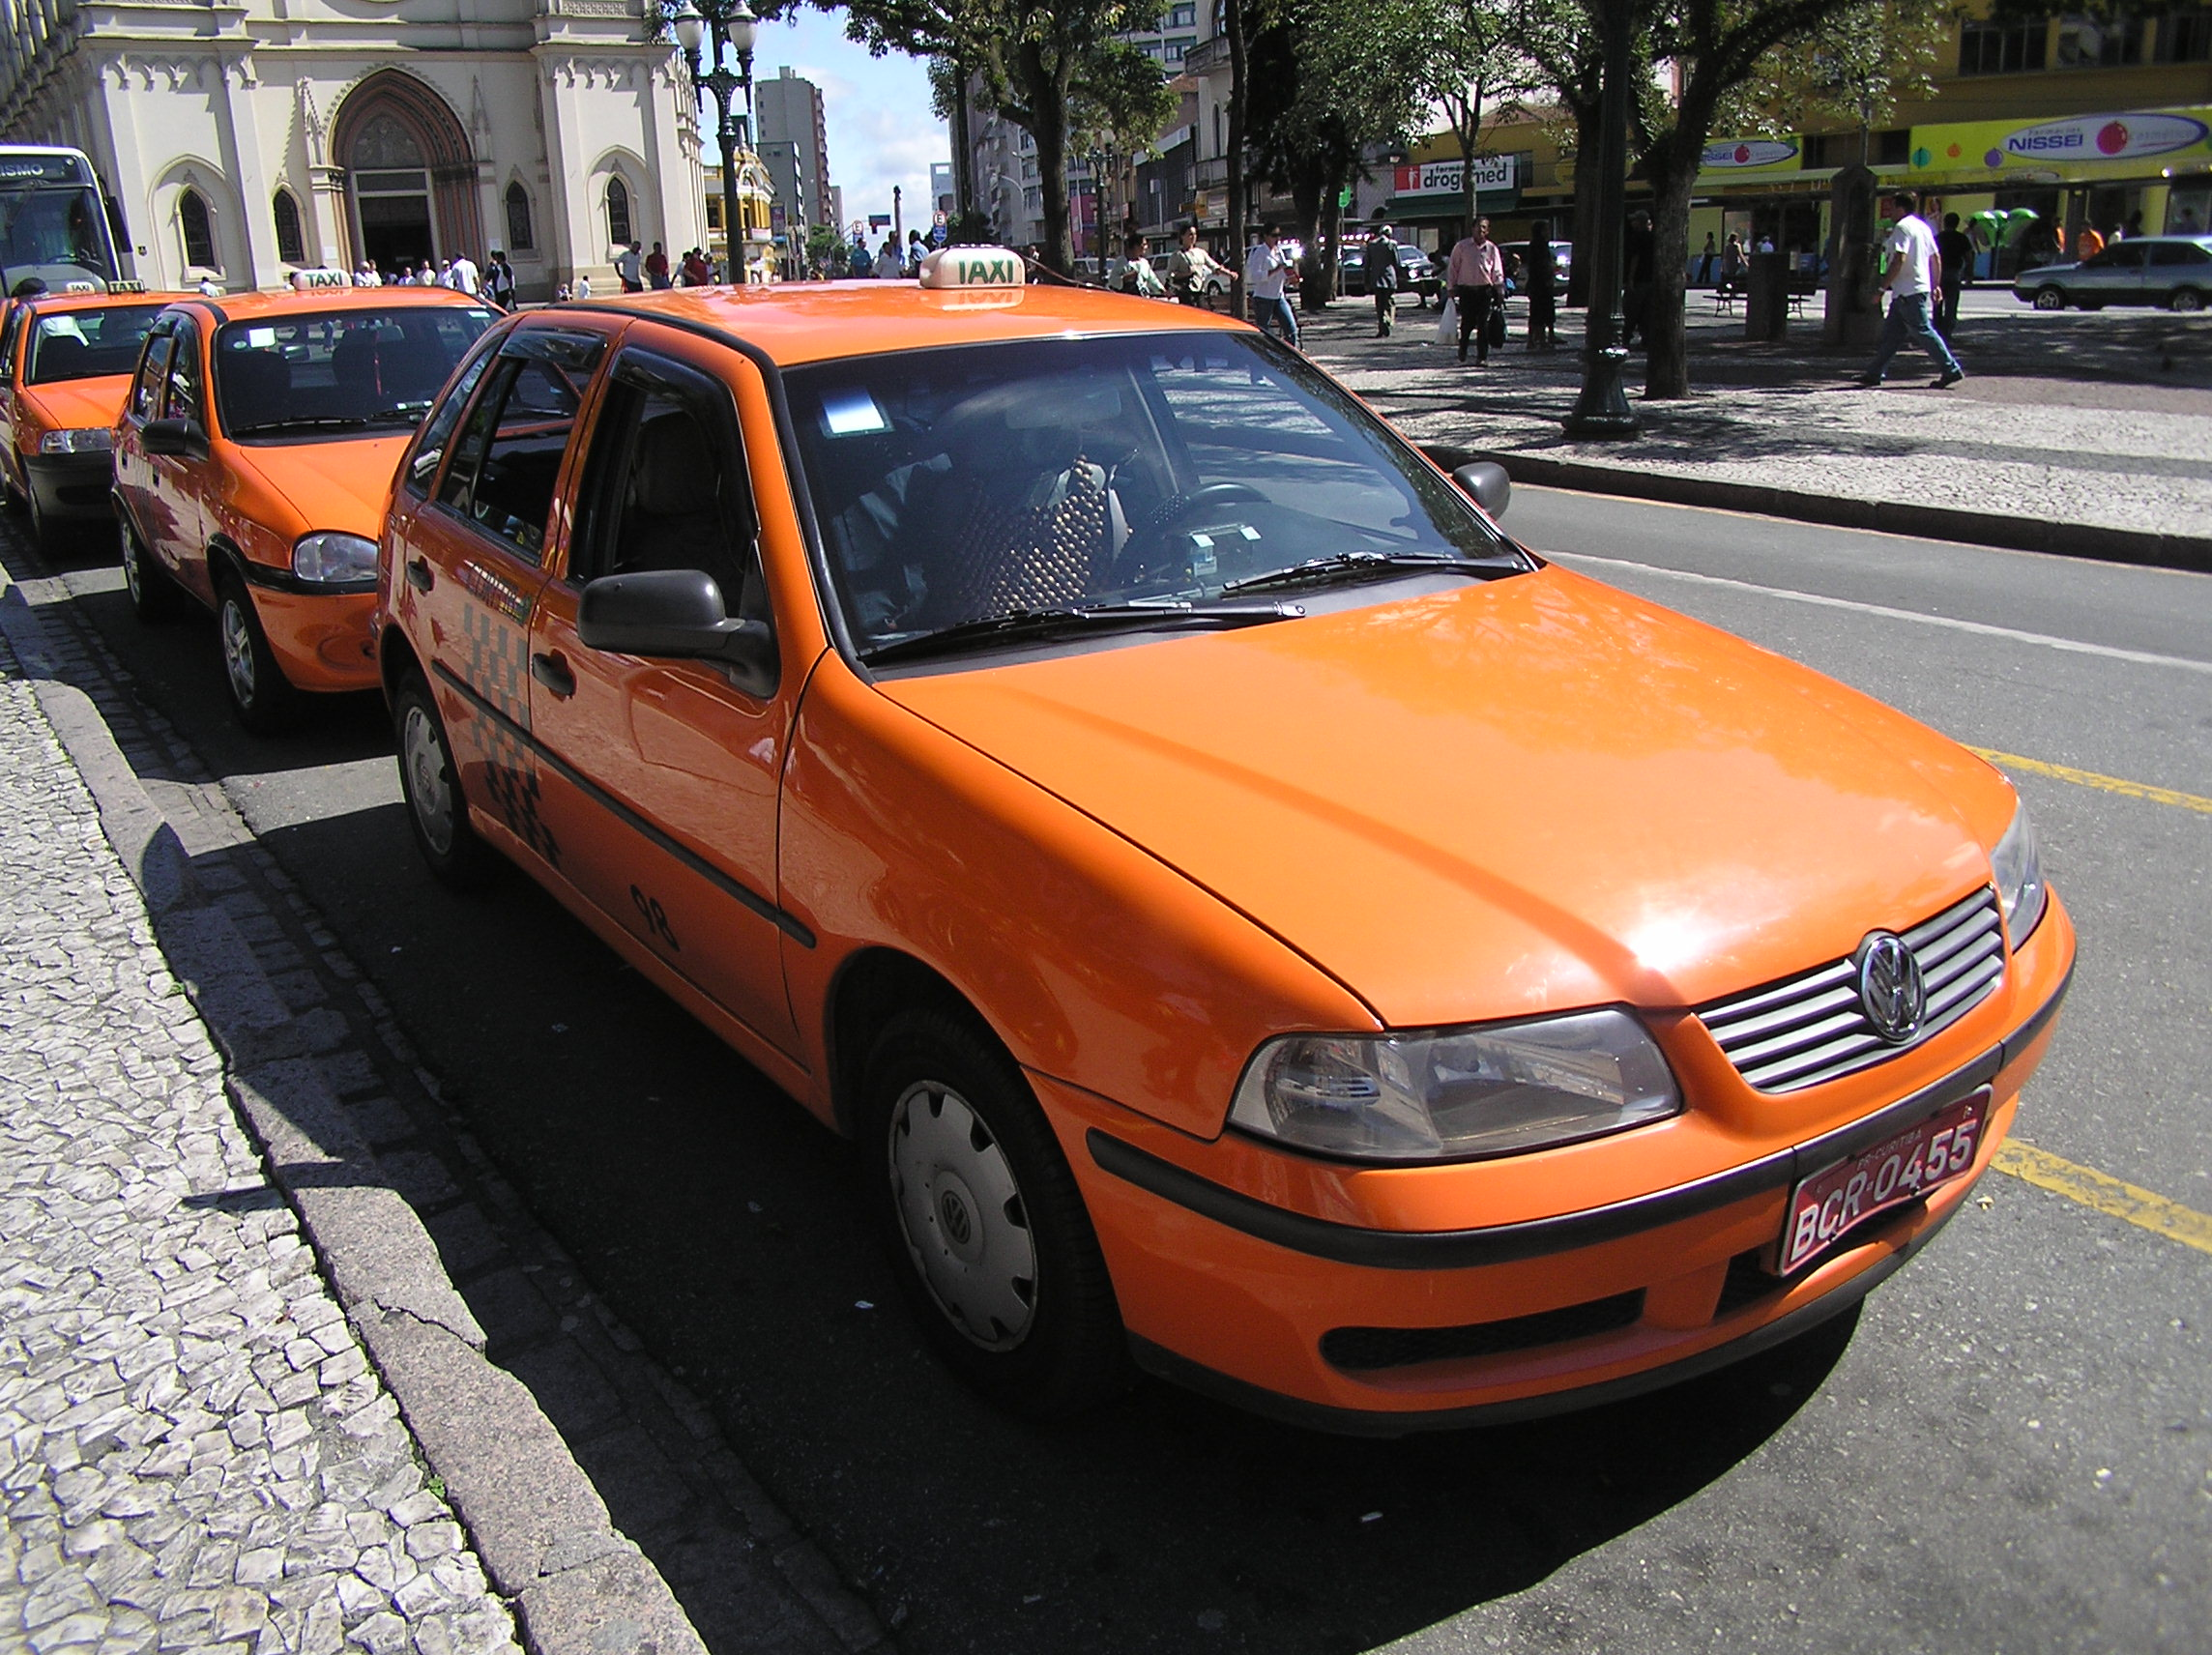 Orange Colour Taxis.